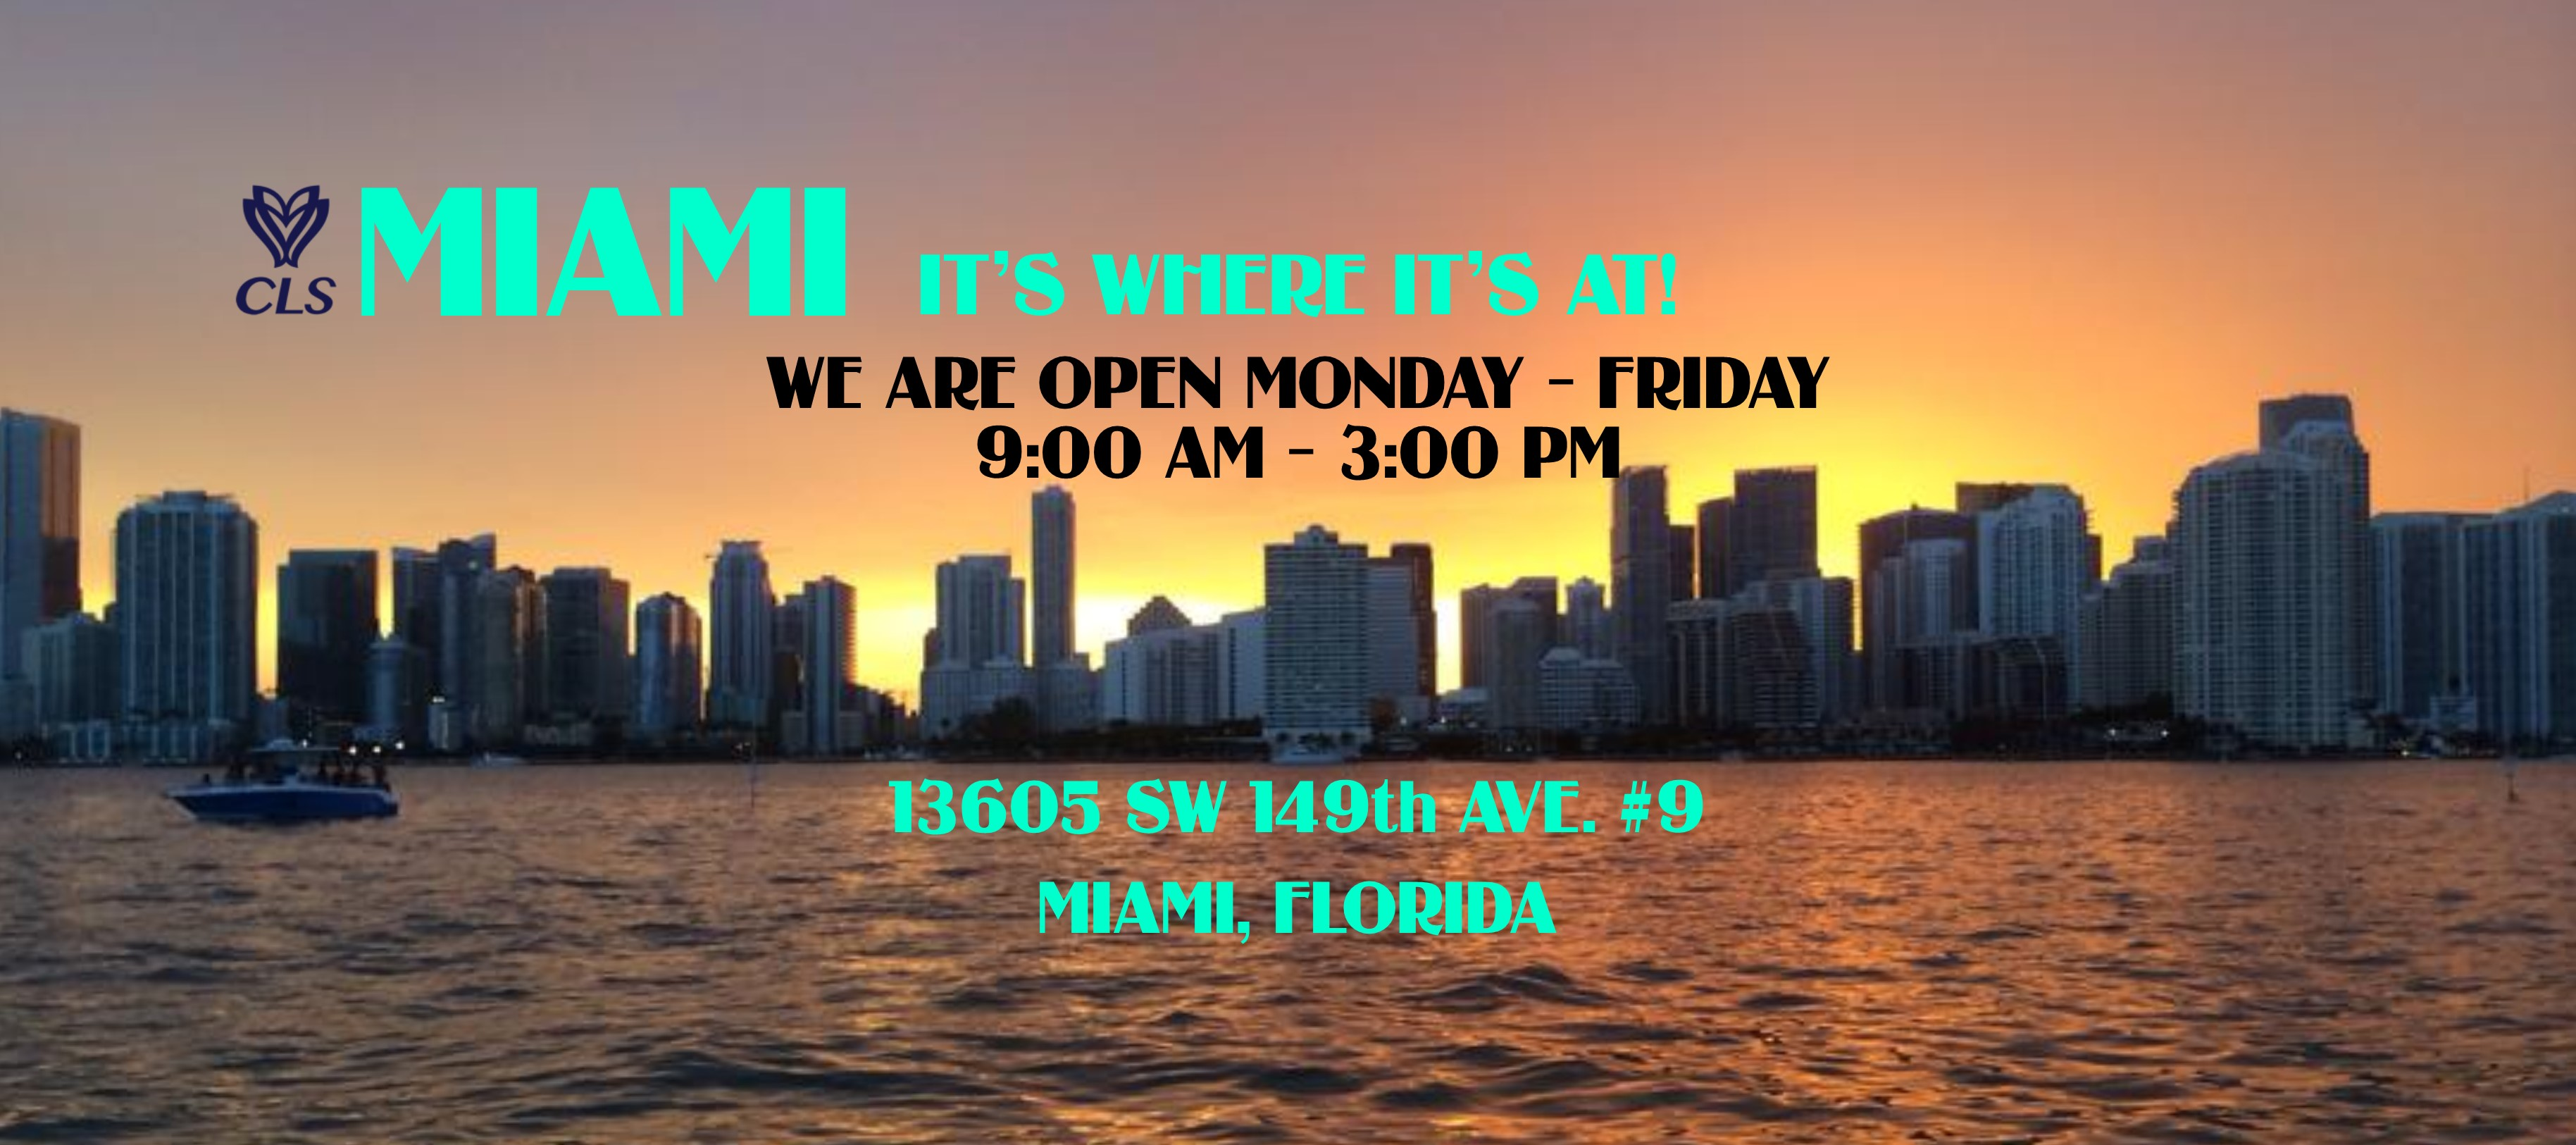 https://www.clssportswear.com/wp-content/uploads/2019/03/Miami_Skyline_CLS_Hours.jpg